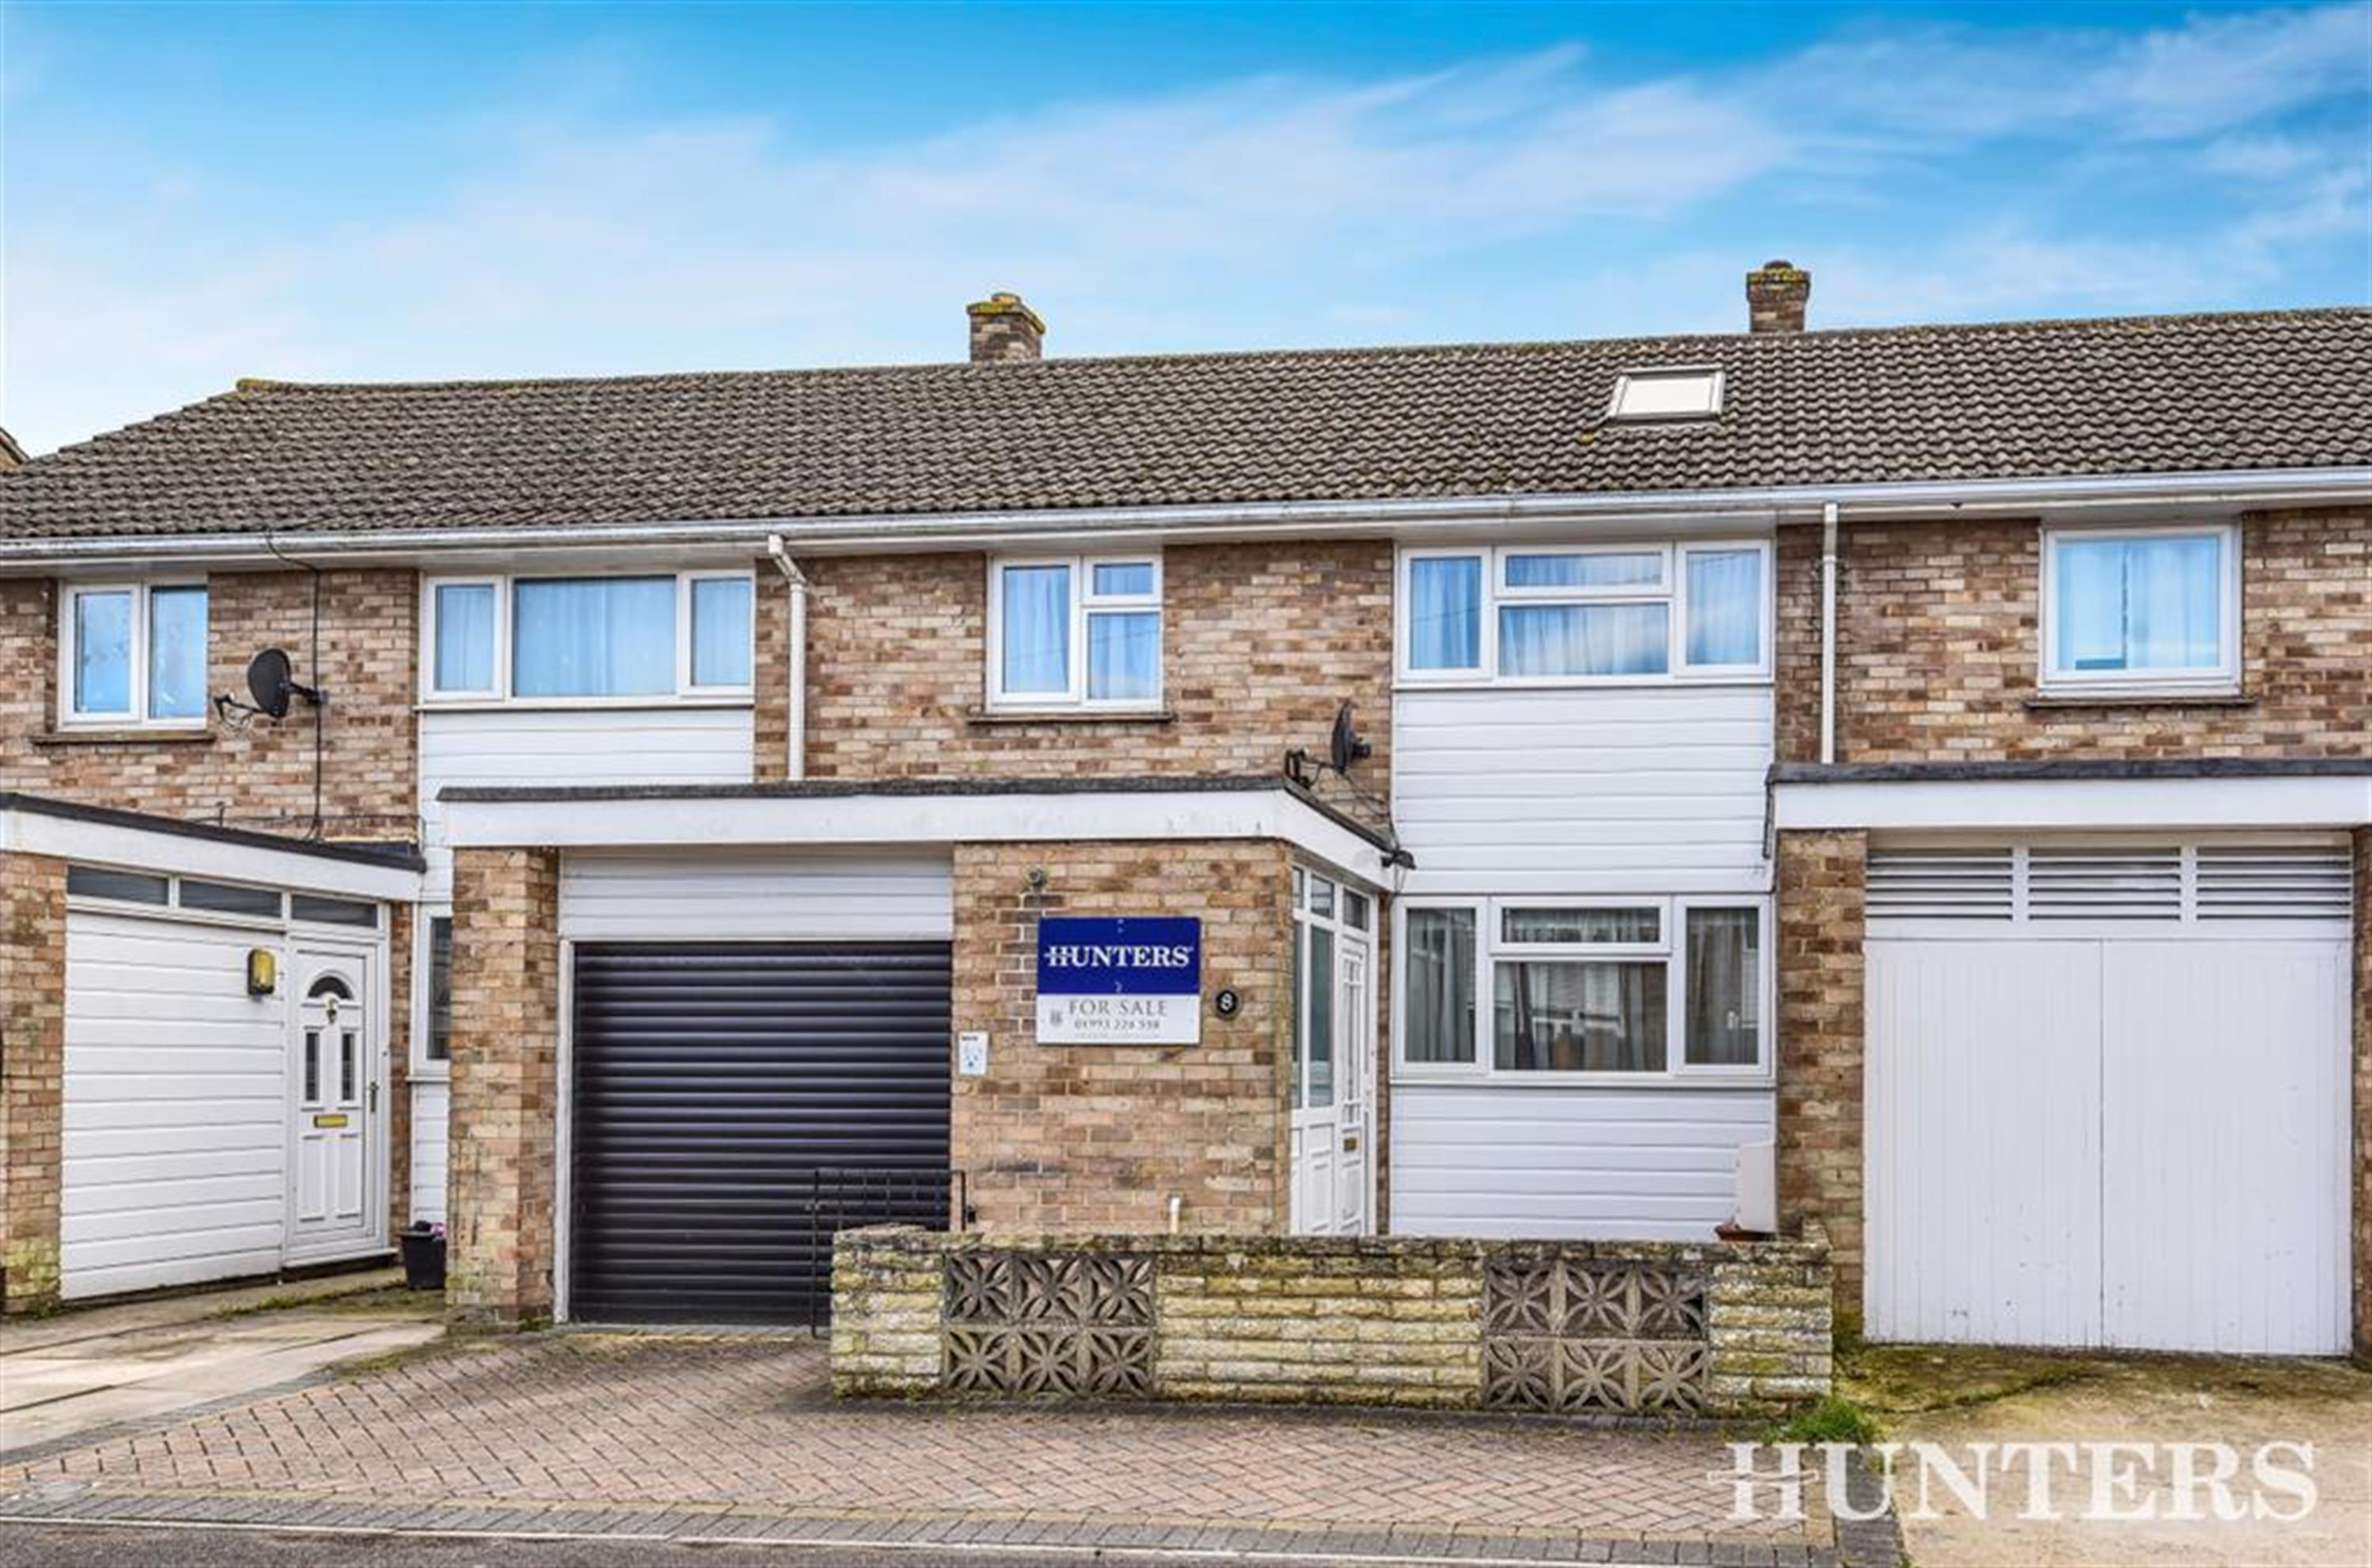 Hill View, Carterton, OX18 1BA